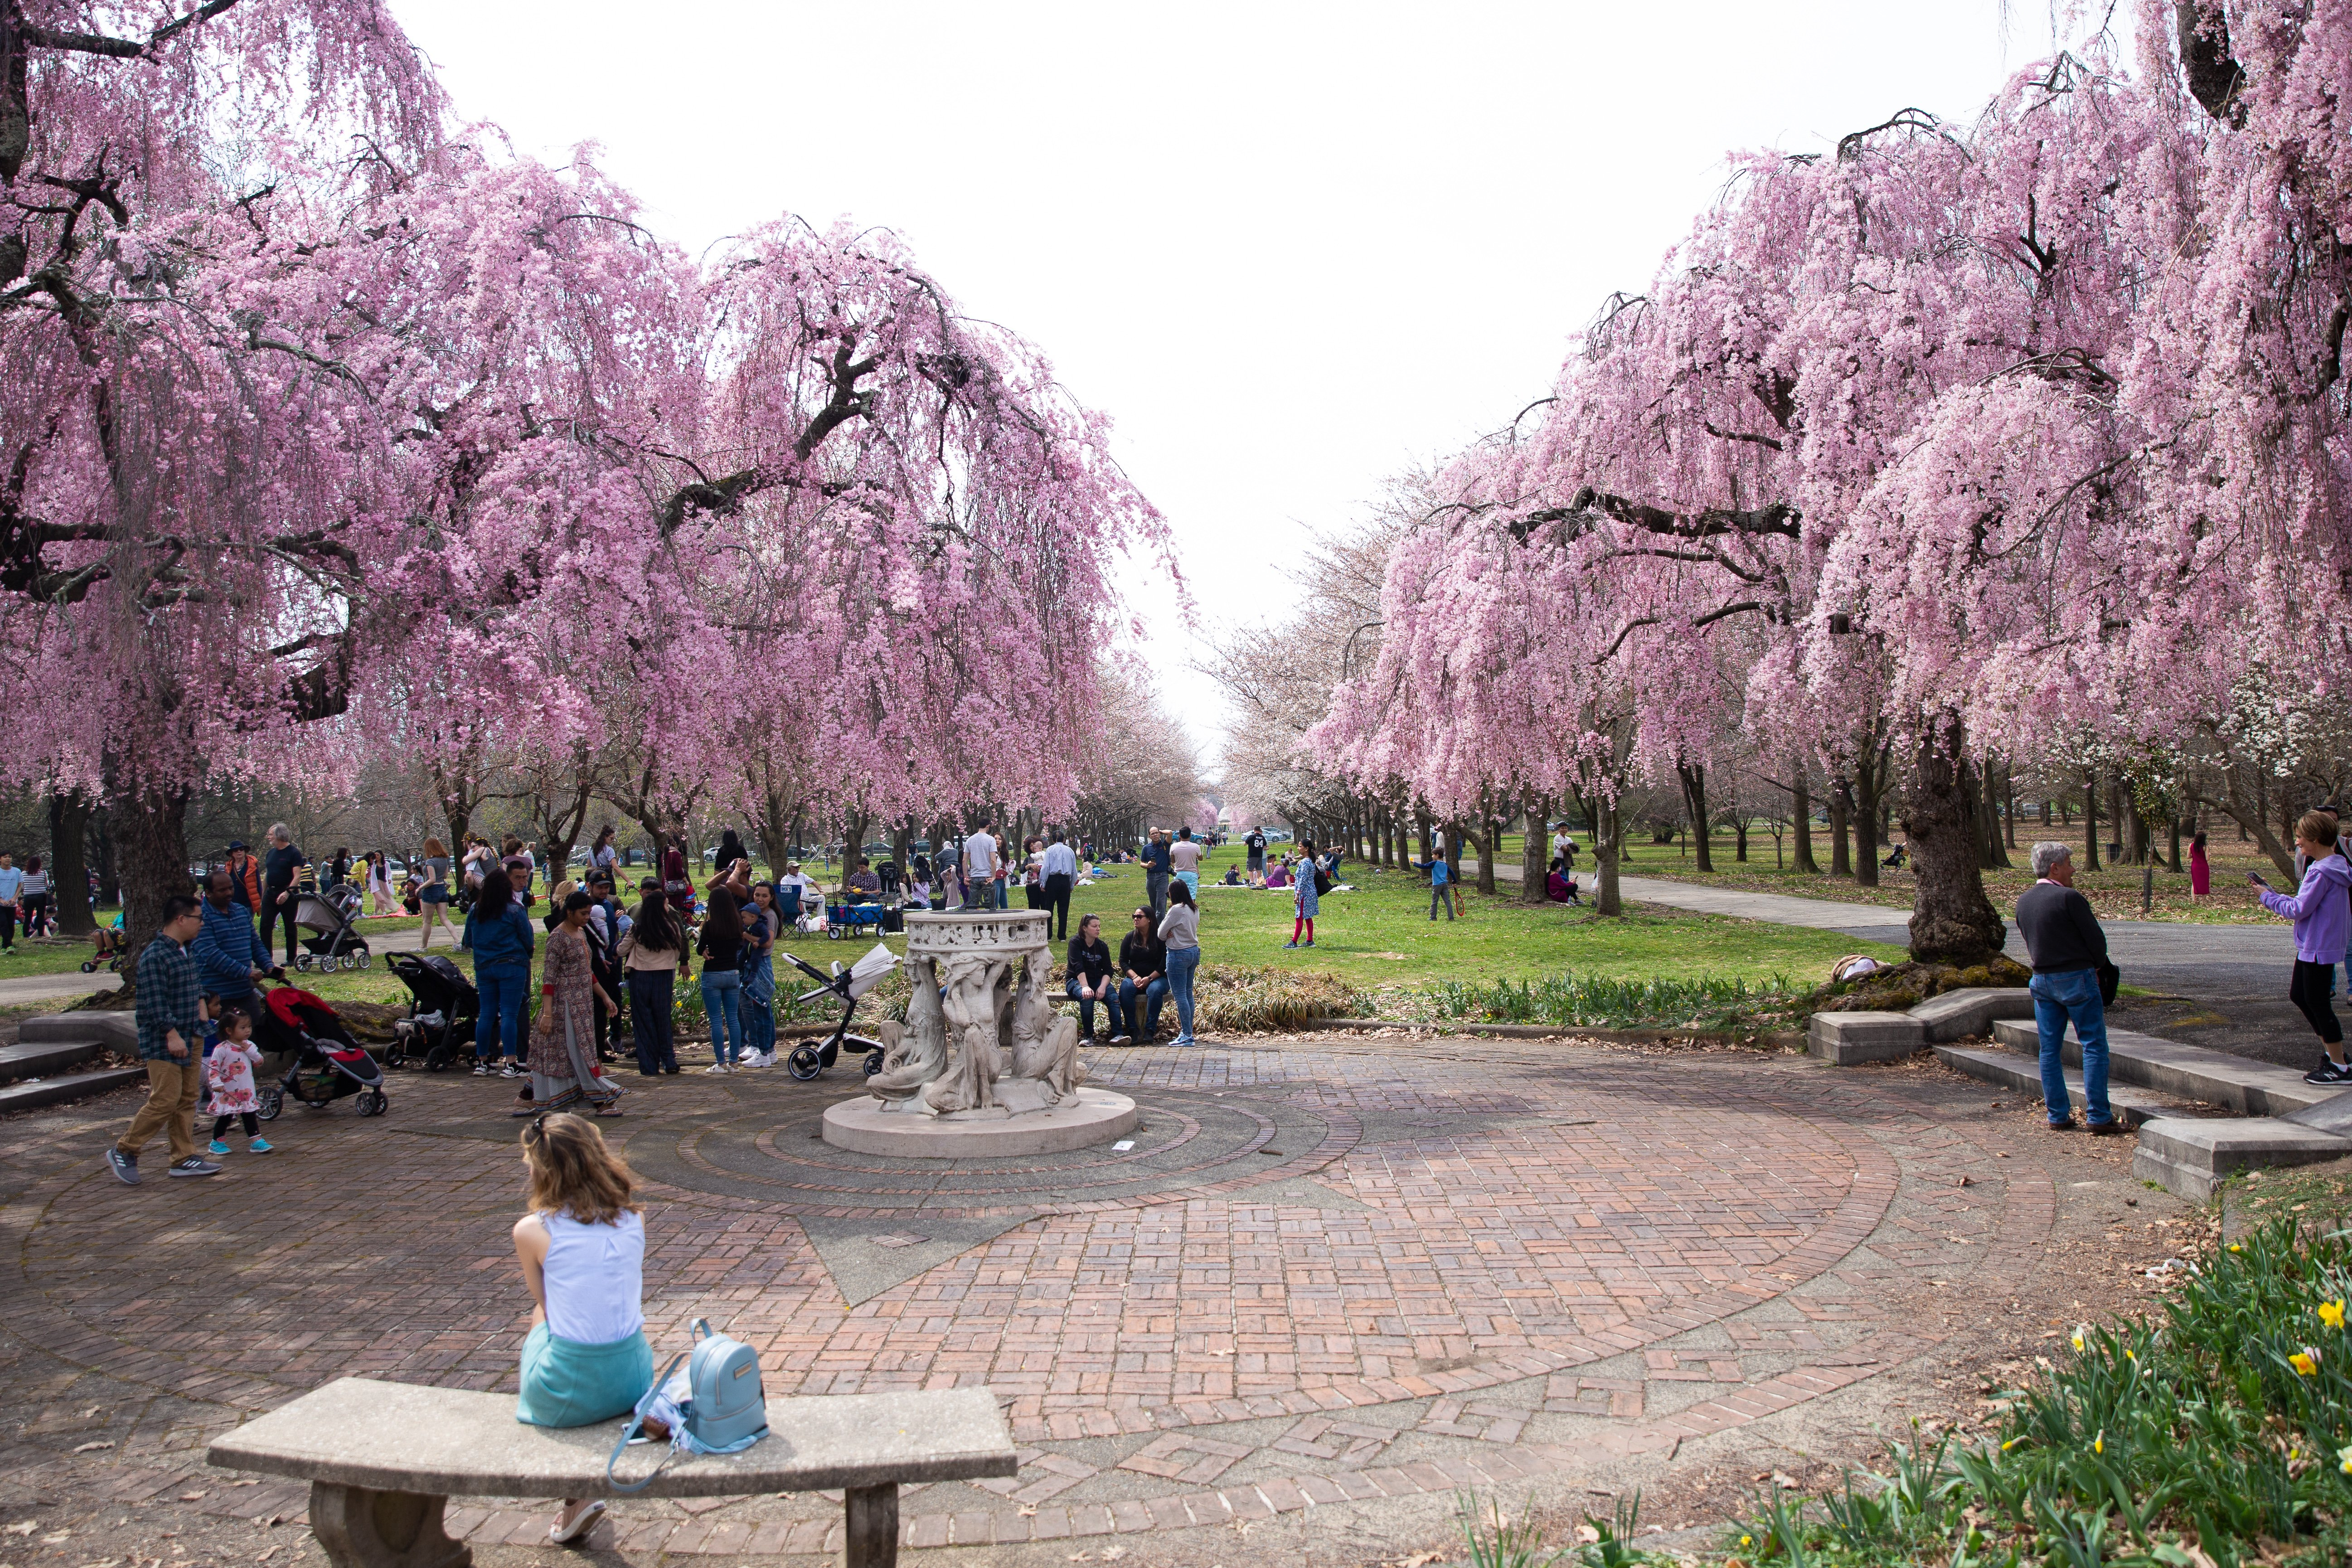 Picture of cherry blossom trees at Fairmount Park in Philadelphia, PA.